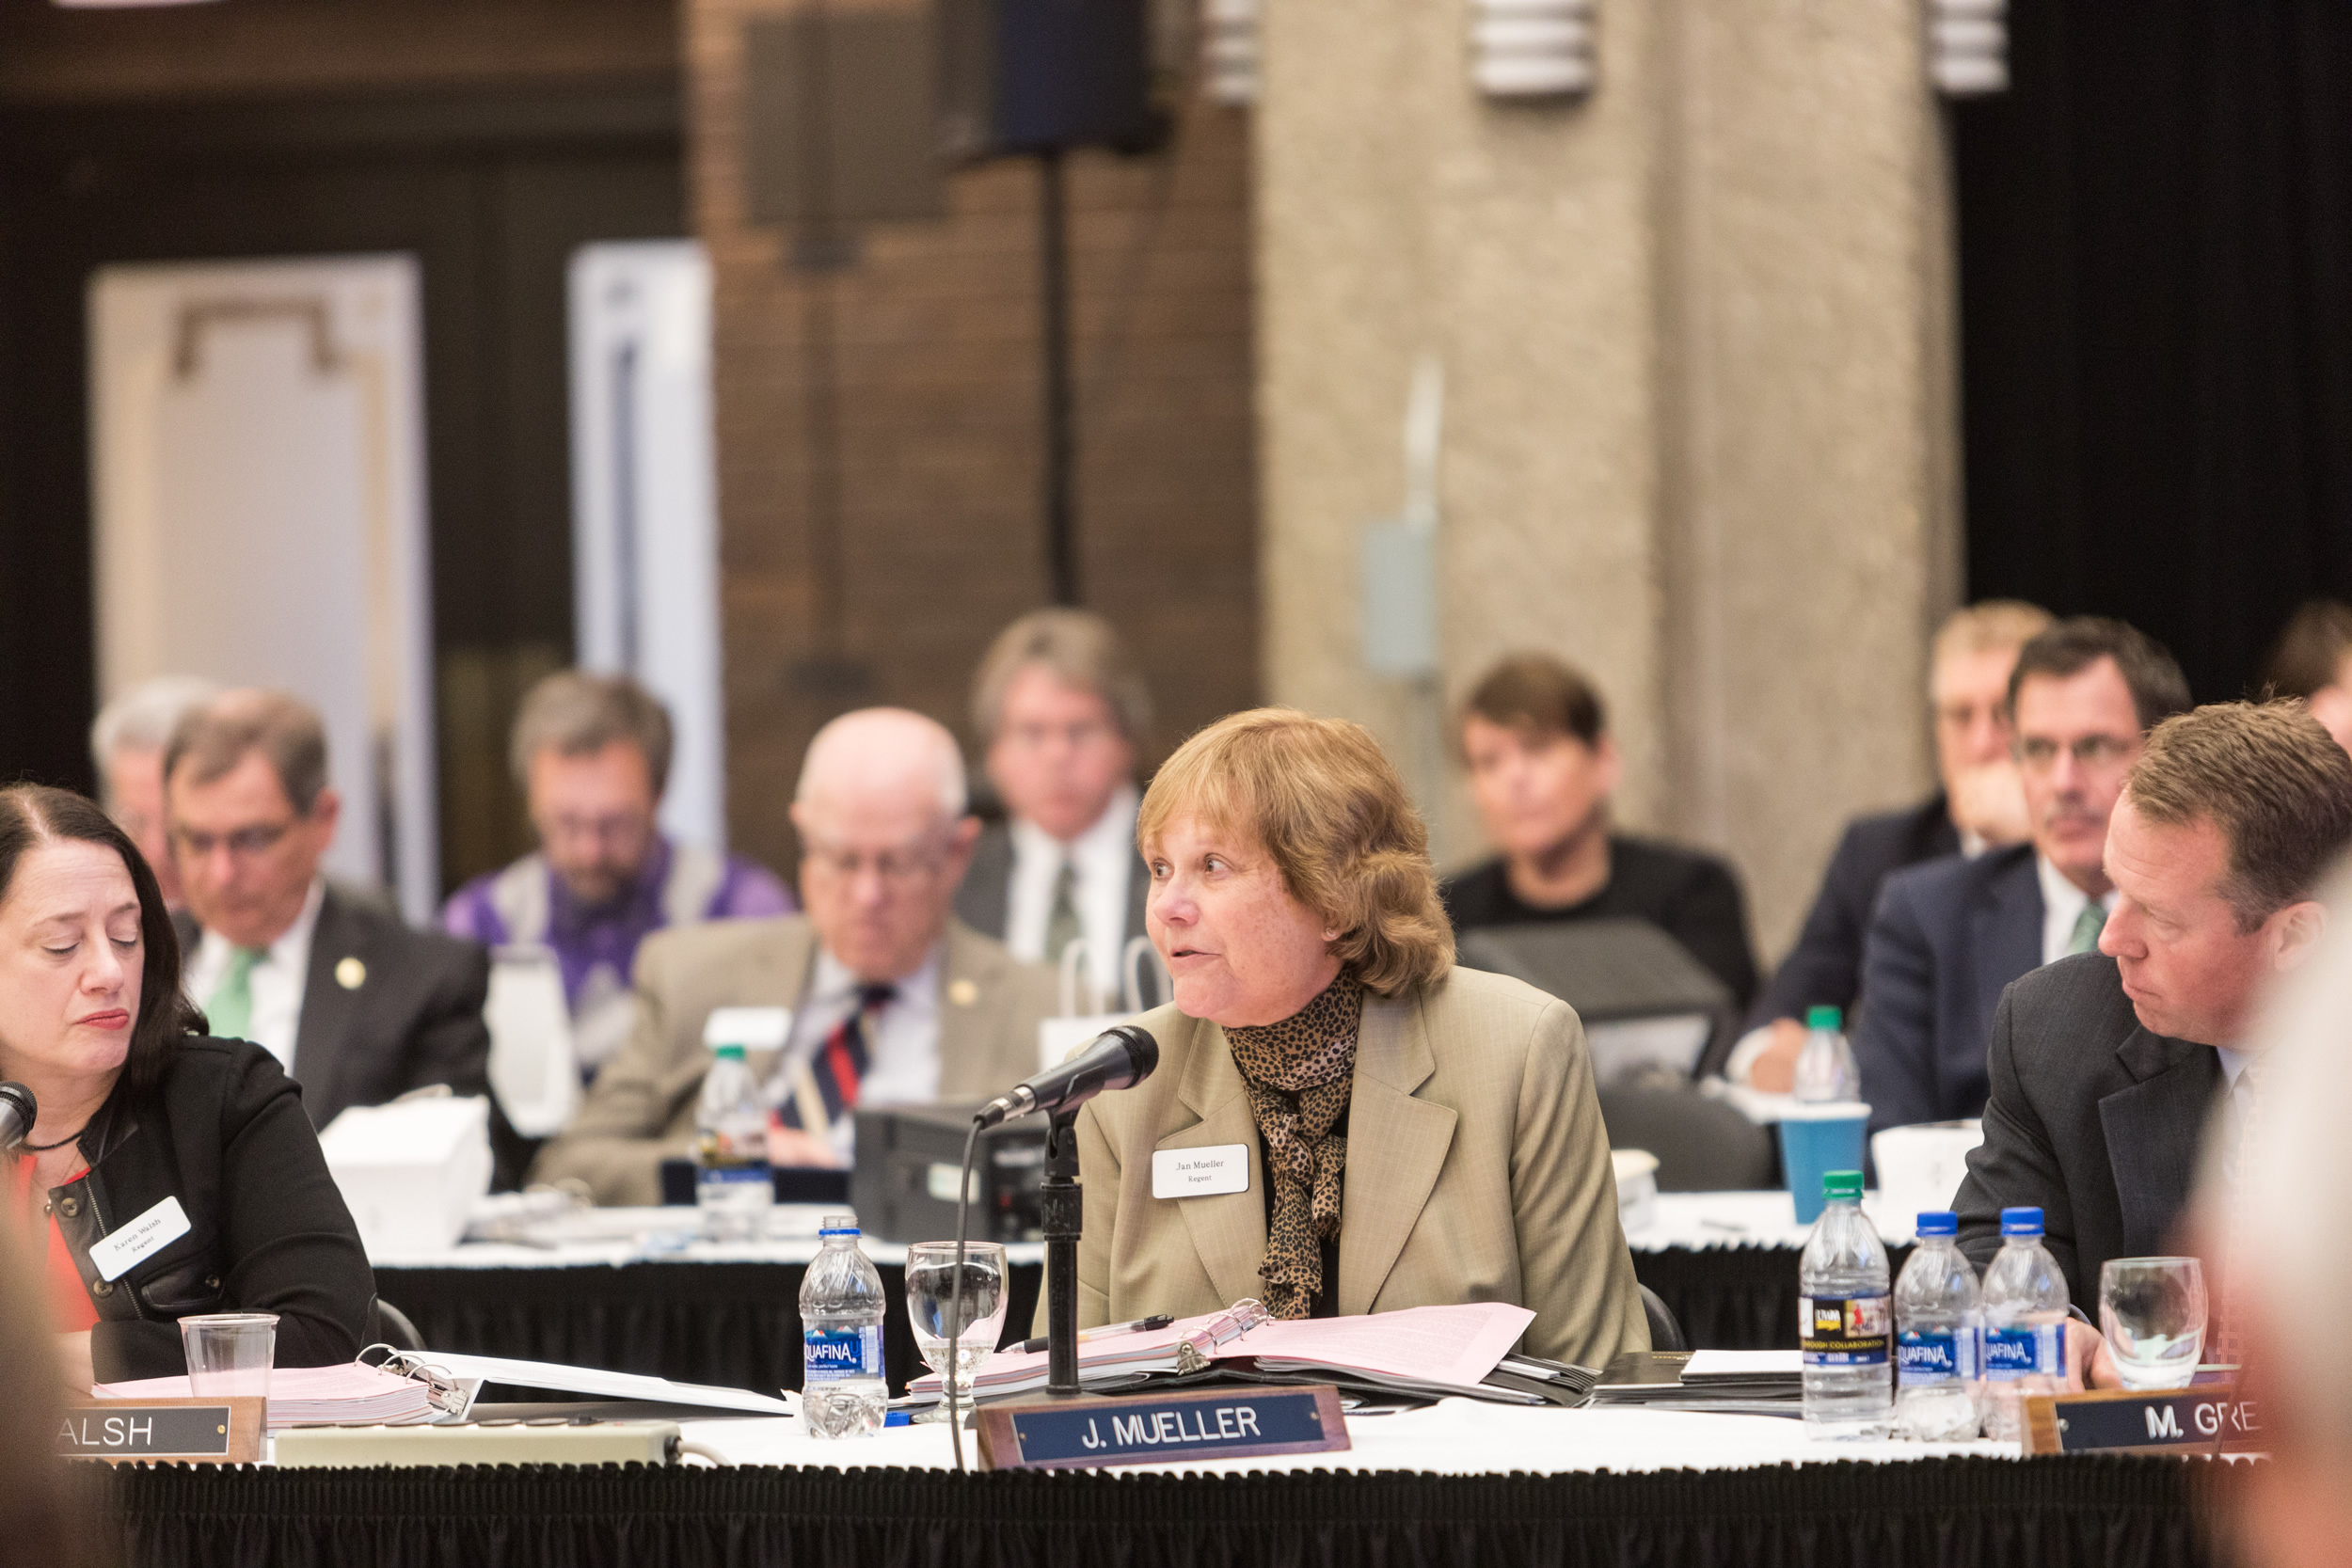 Photo of Regent Janice Mueller speaking at the Board of Regents meeting hosted by UW-Milwaukee on June 6, 2019. (Photo by Mikaila Dusenberry/UW-Milwaukee)